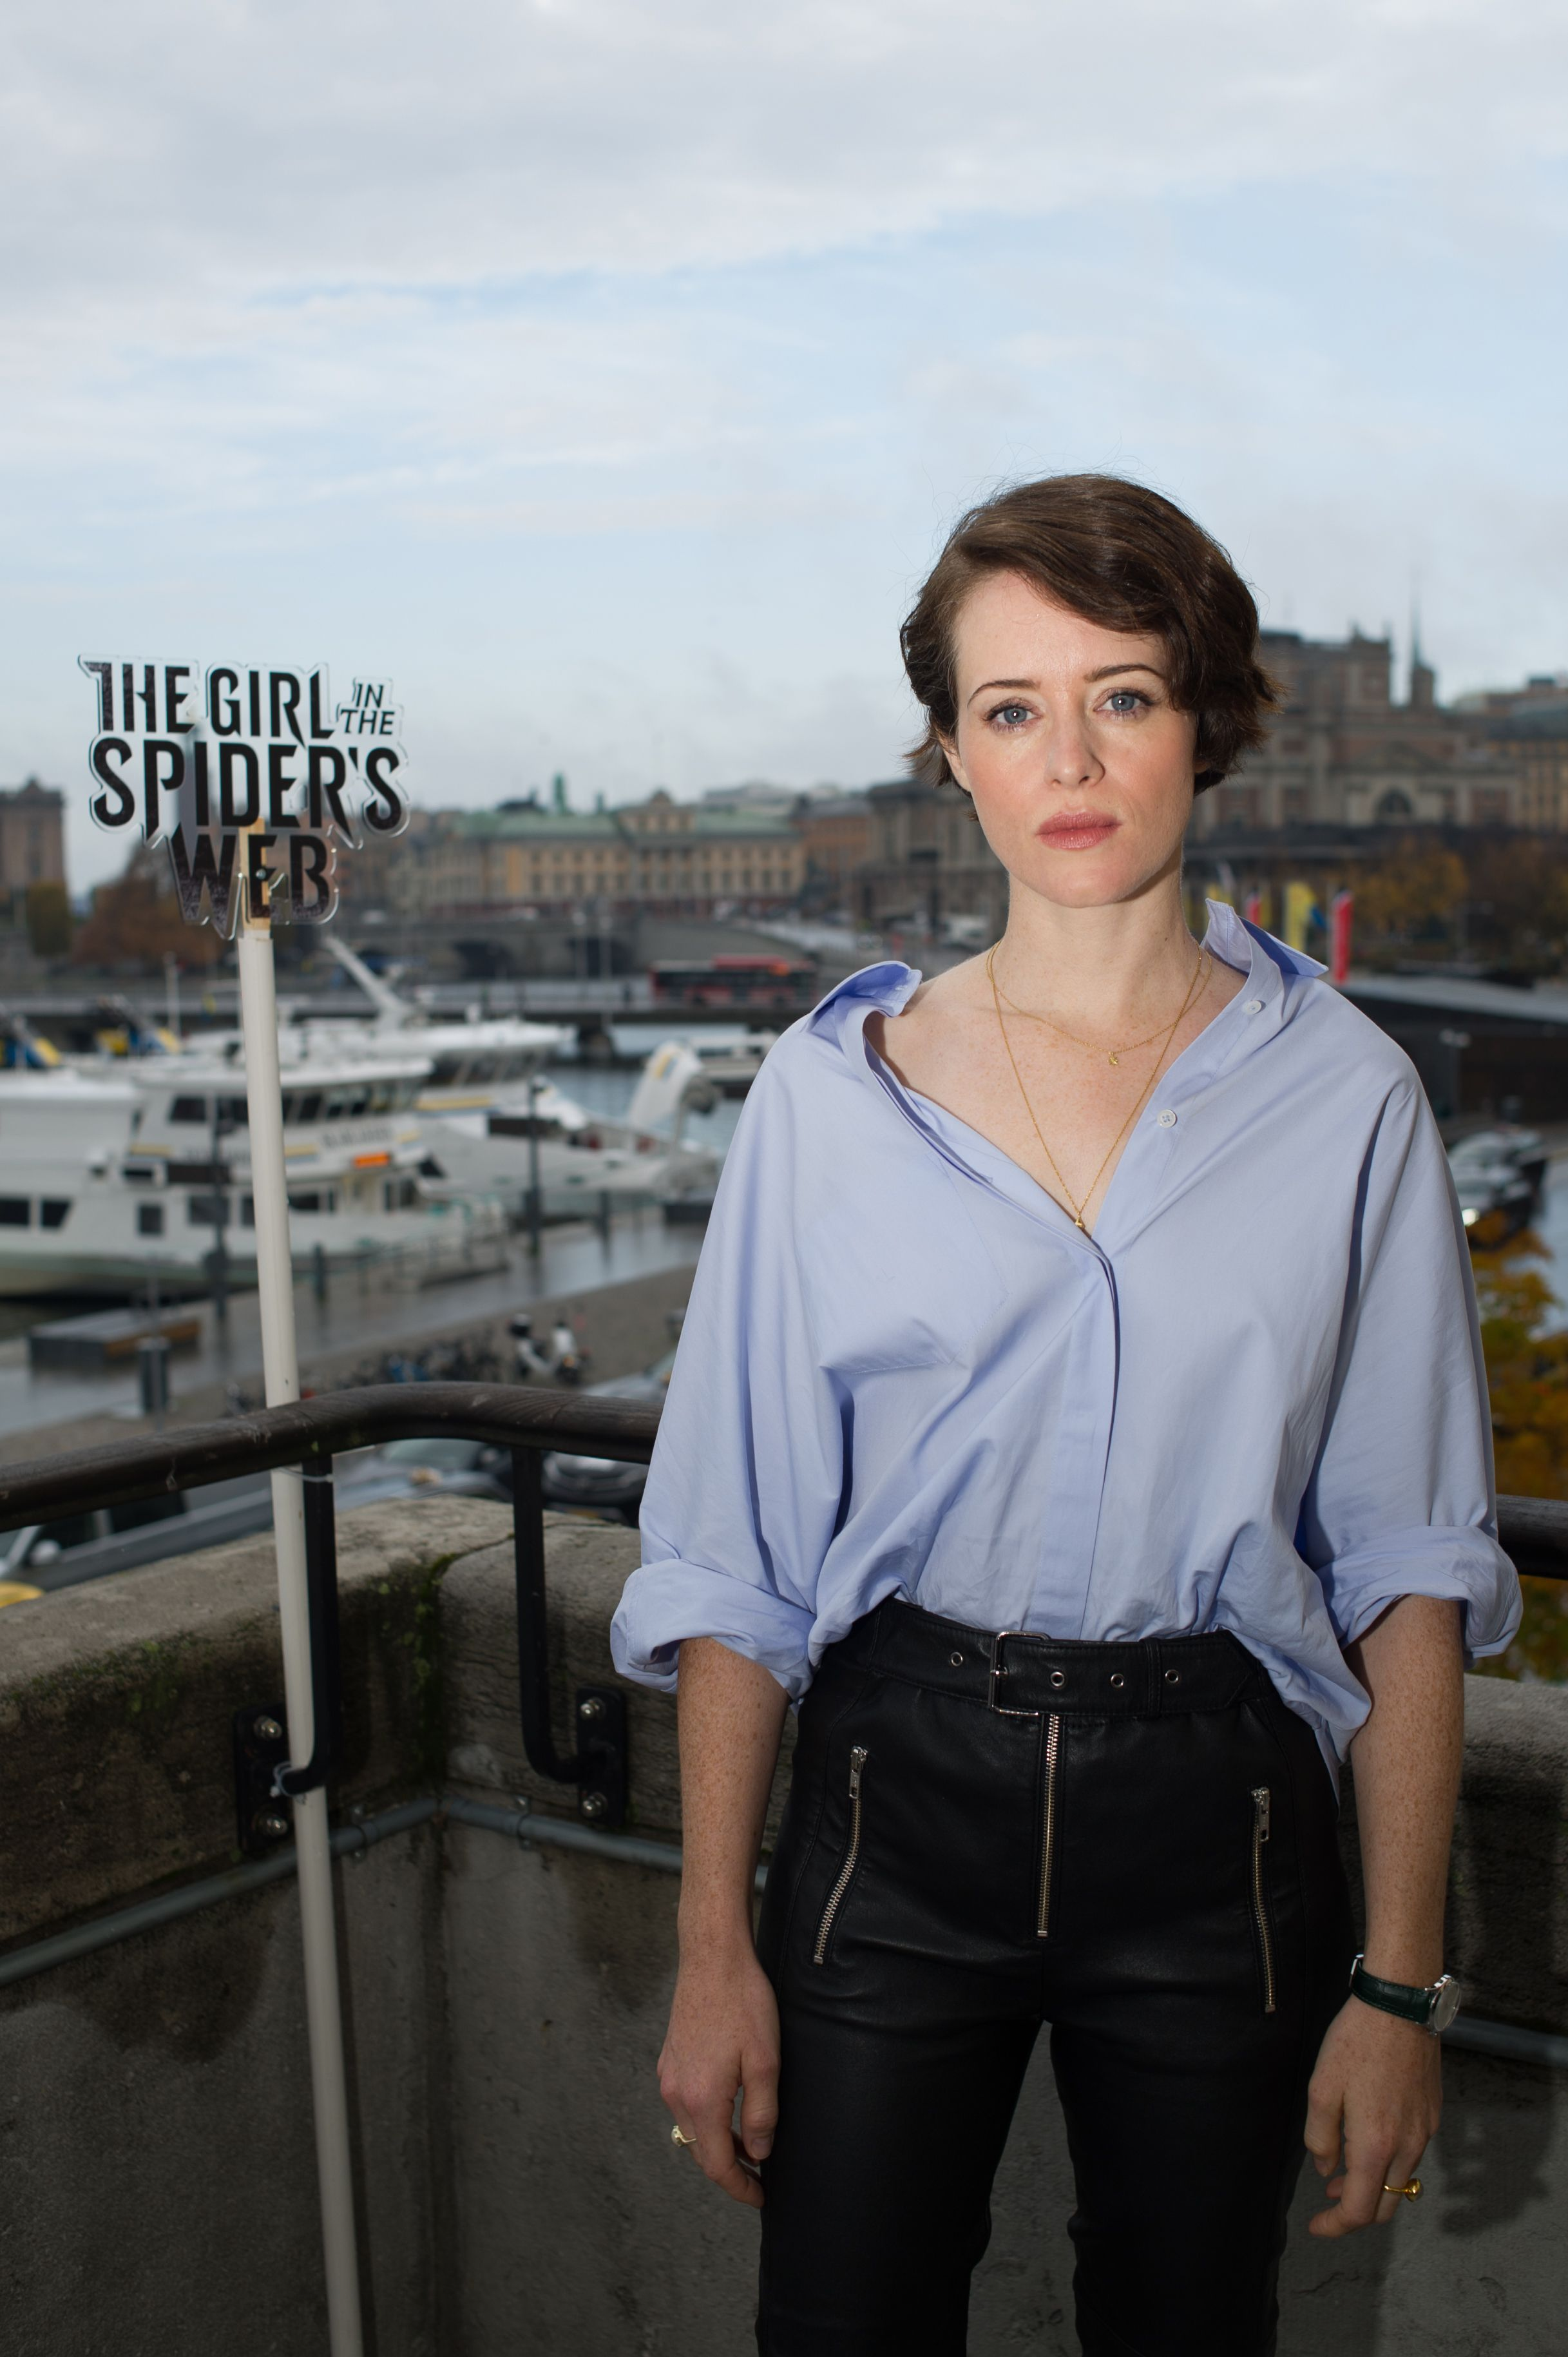 Claire Foy Figures Out The Fascination With Her Spider S Web